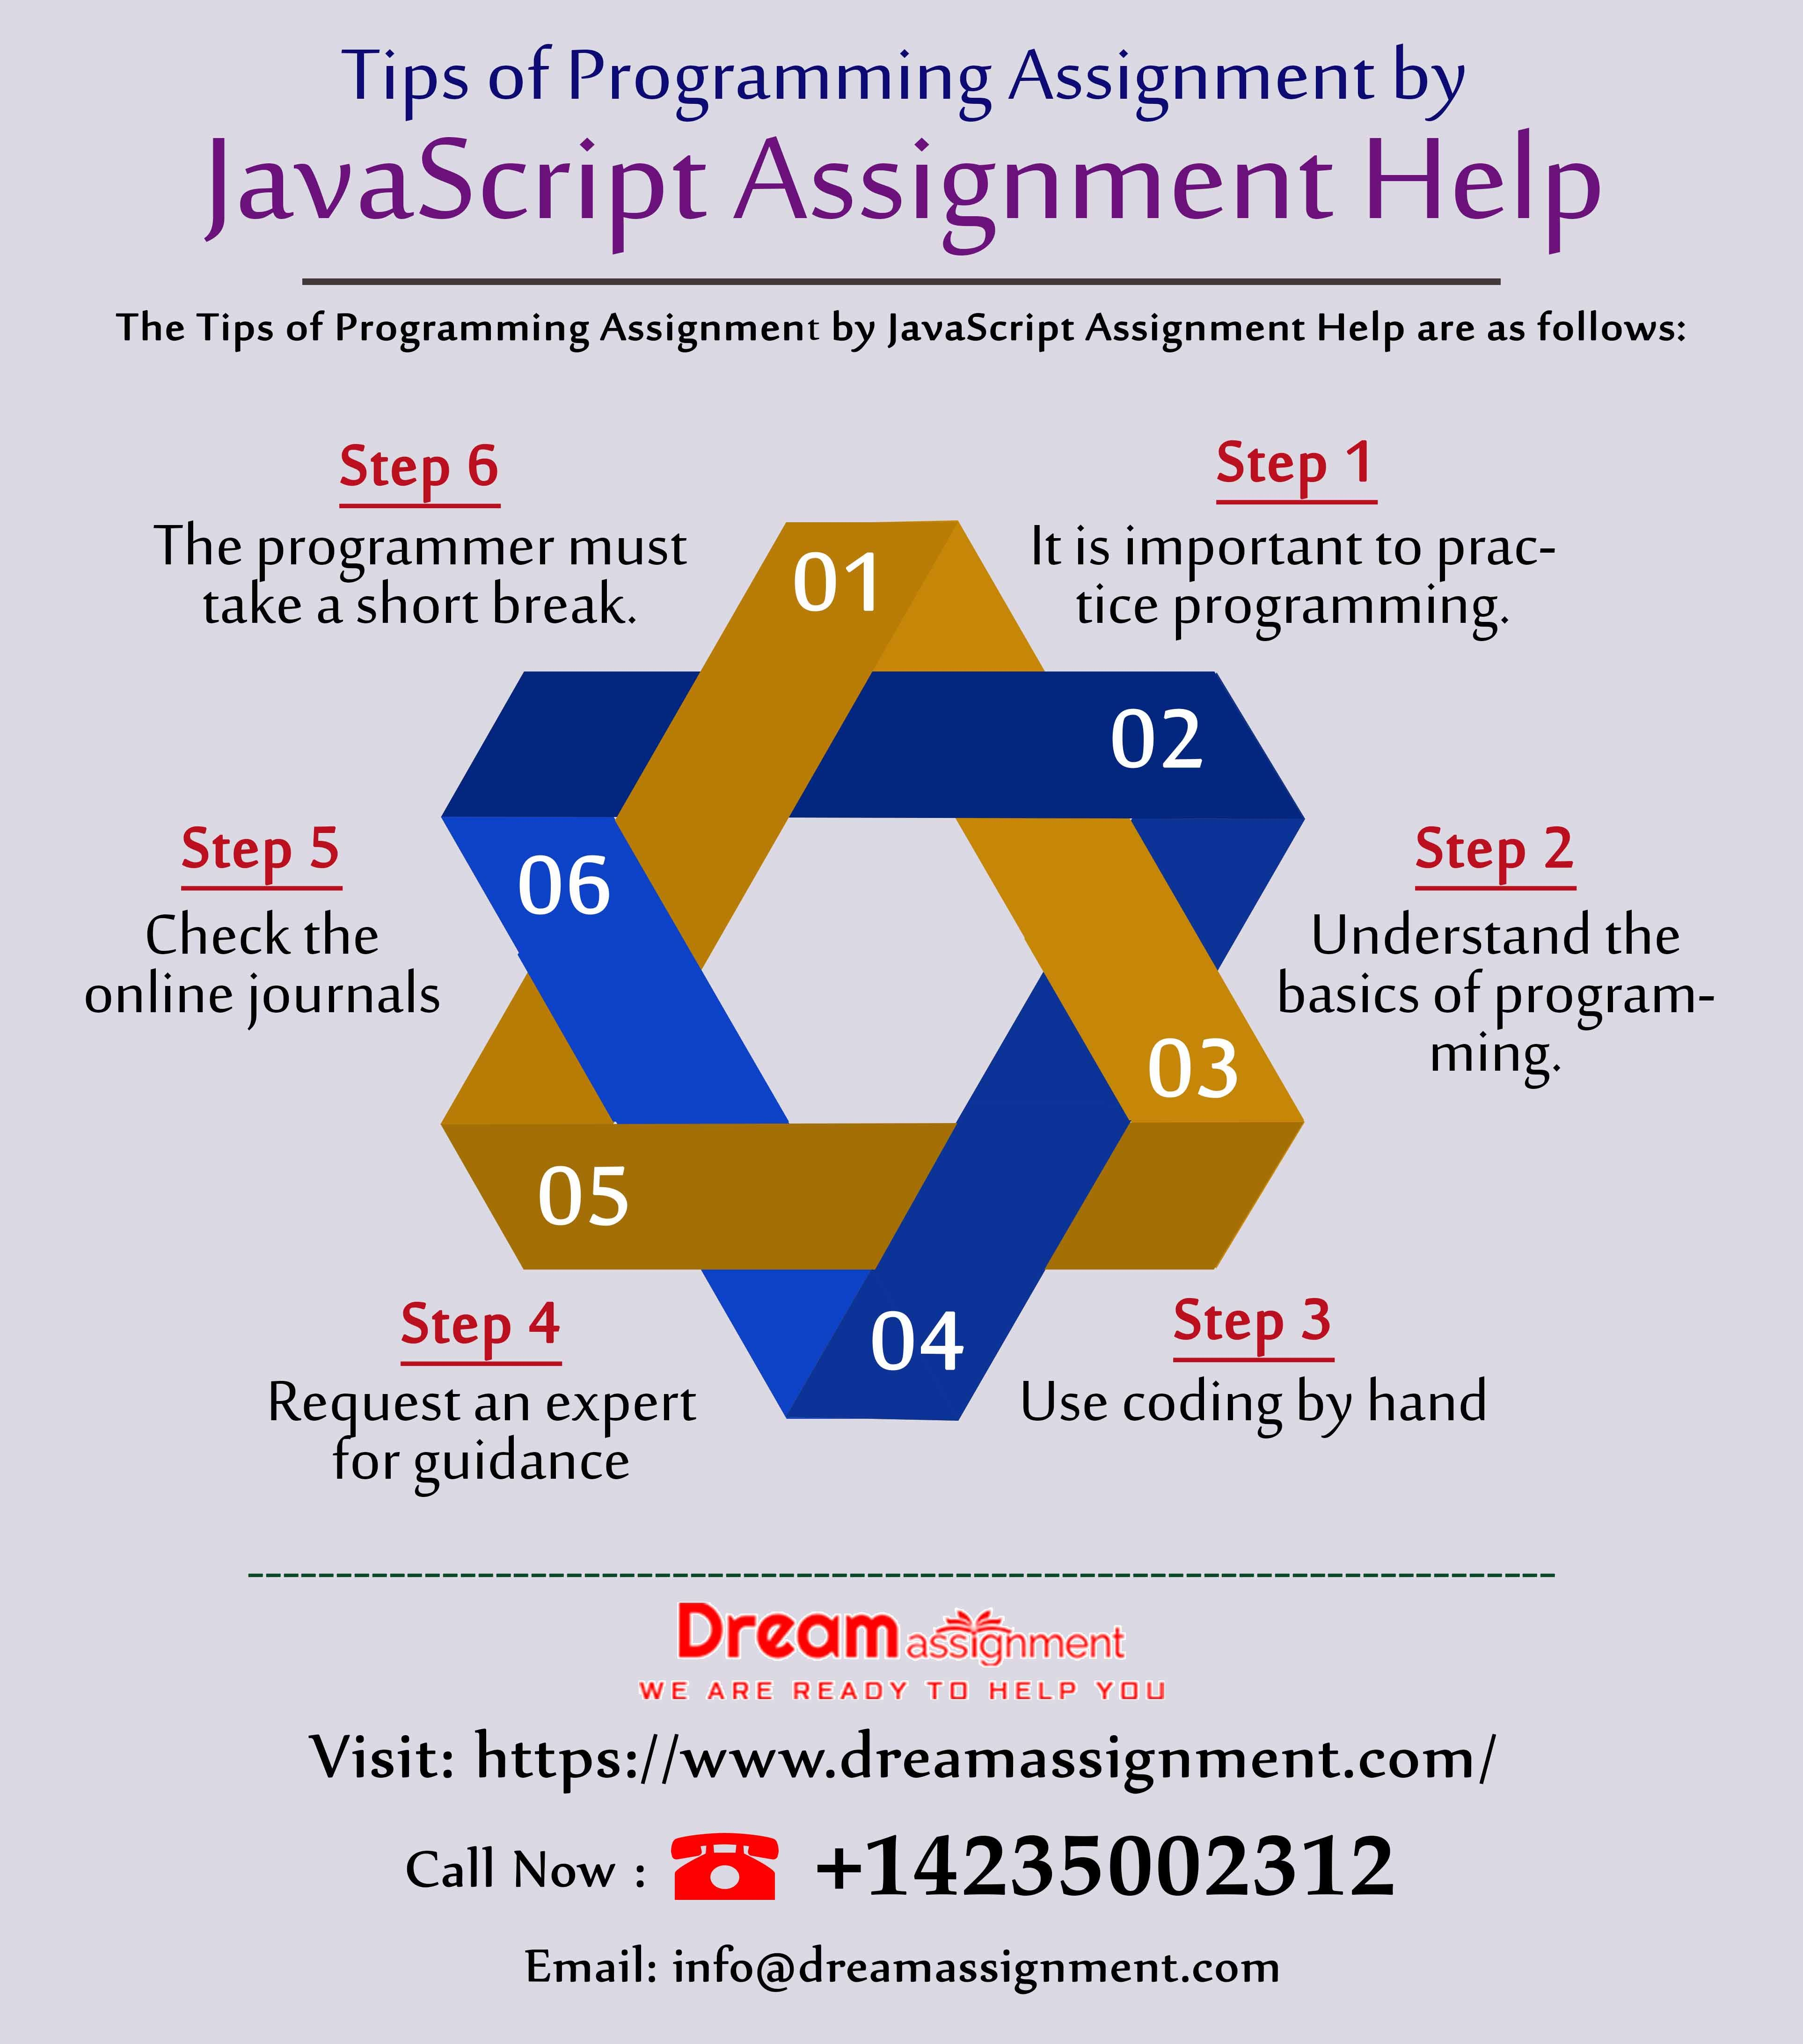 Tips Of Programming Assignment By Javascript Assignment